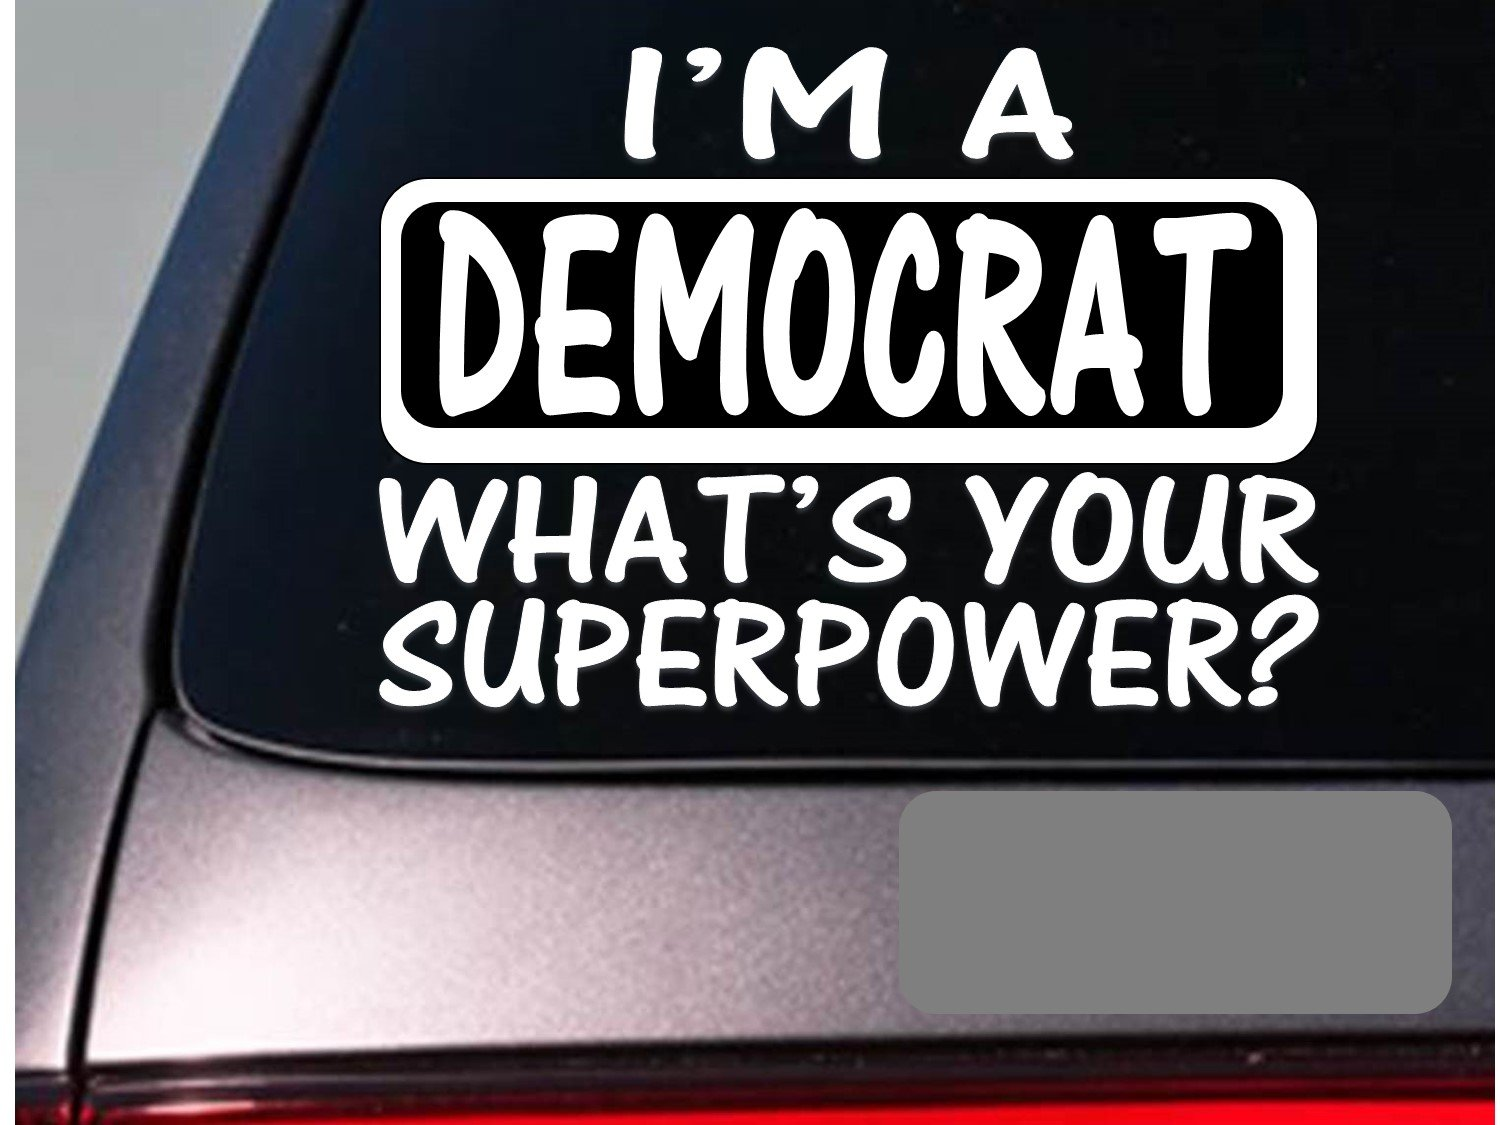 Bumper sticker api design - Amazon Com I M A Democrat Sticker Decal E148 Political Liberal Election Arts Crafts Sewing